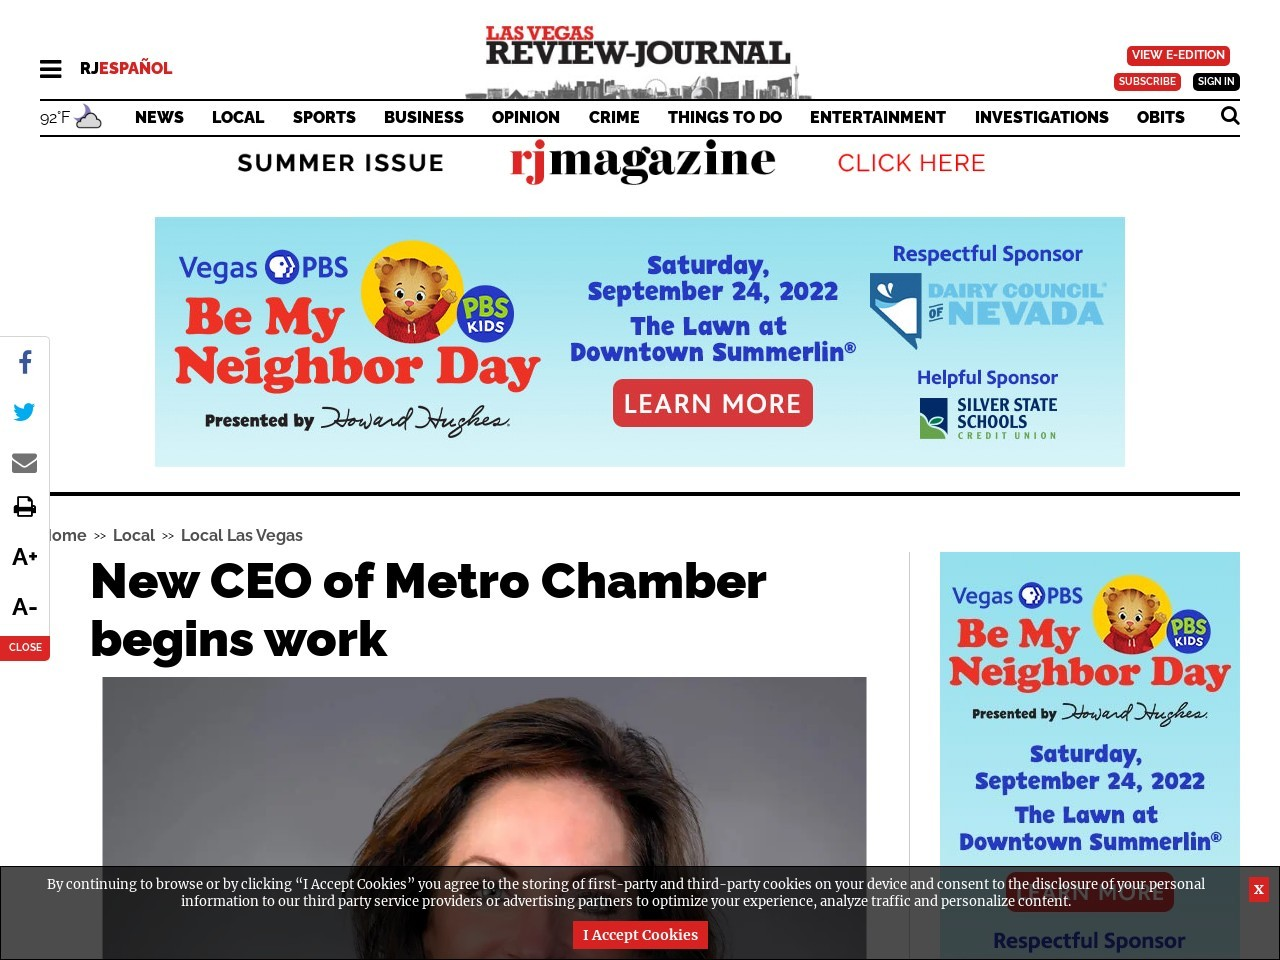 New CEO of Metro Chamber begins work